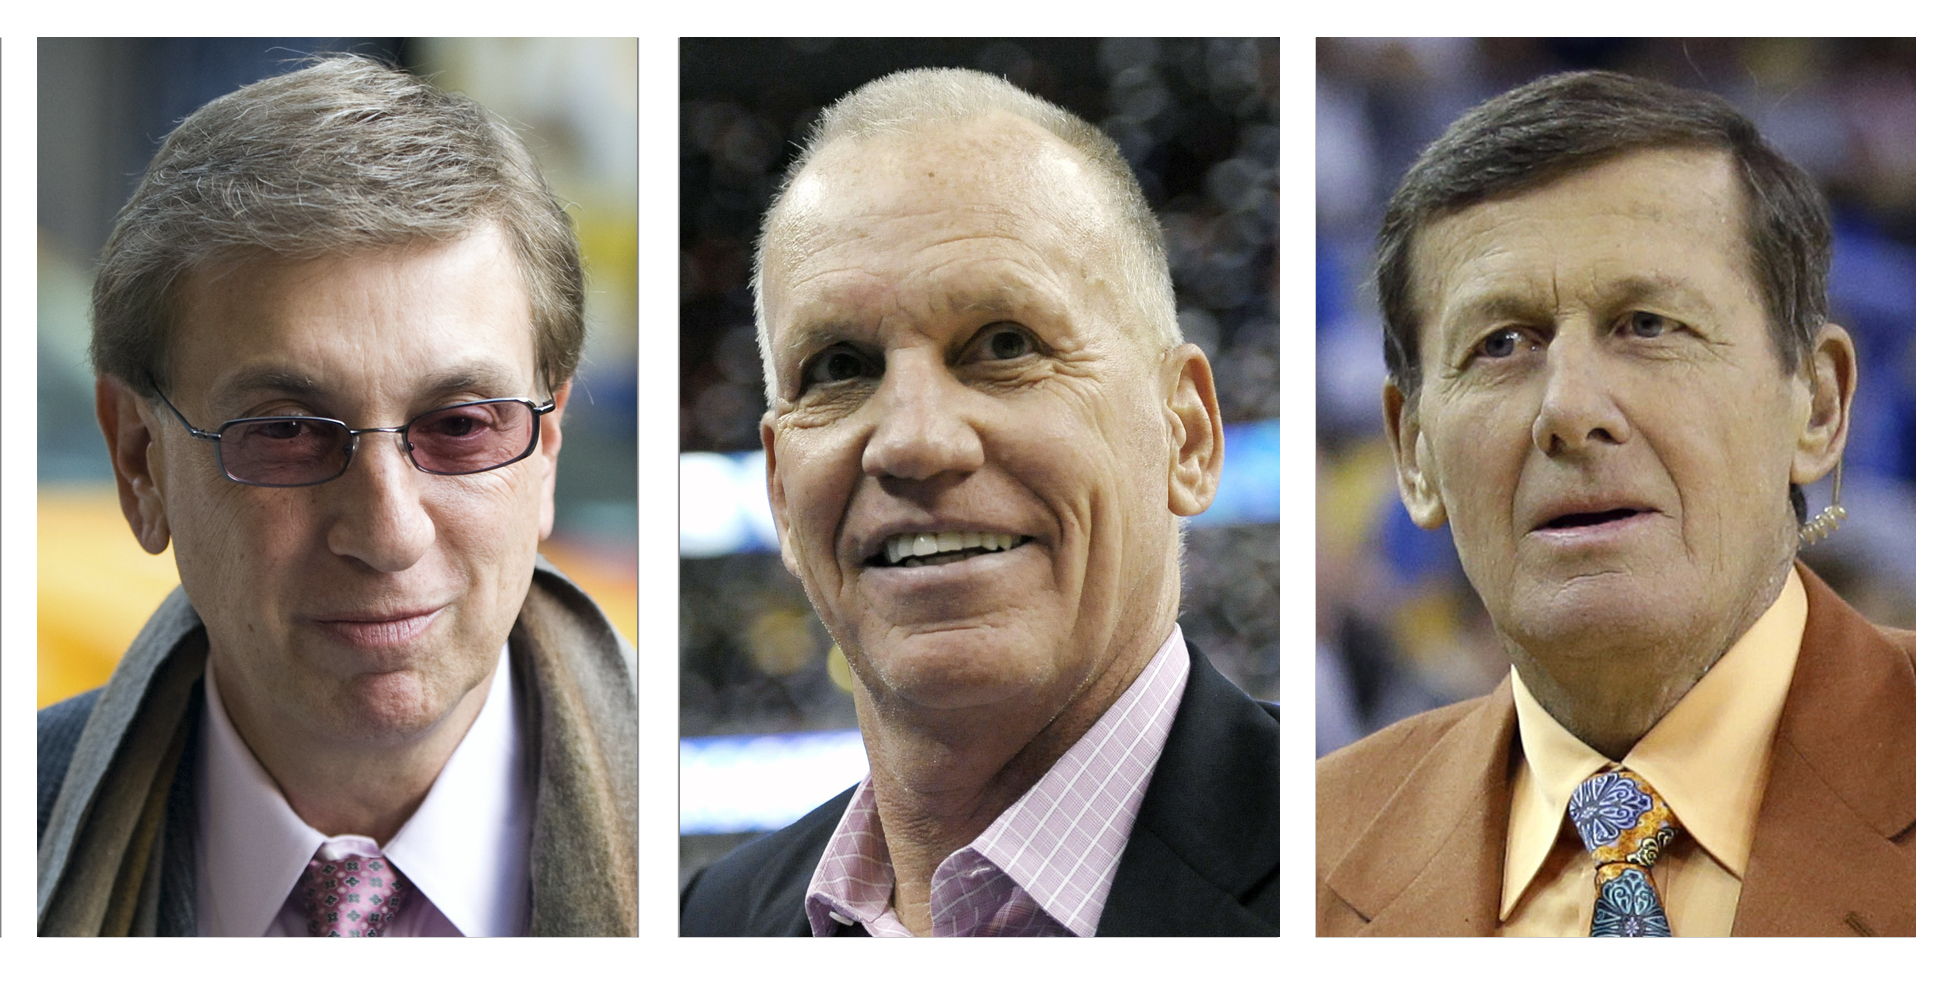 FILE - This combination of file photos shows Marv Albert, from left, in 2009, Doug Collins in 2013 and Craig Sager in 2016. Albert will call Olympic basketball this summer for the first time since 1996. NBC announced its hoops commentator teams for Rio on